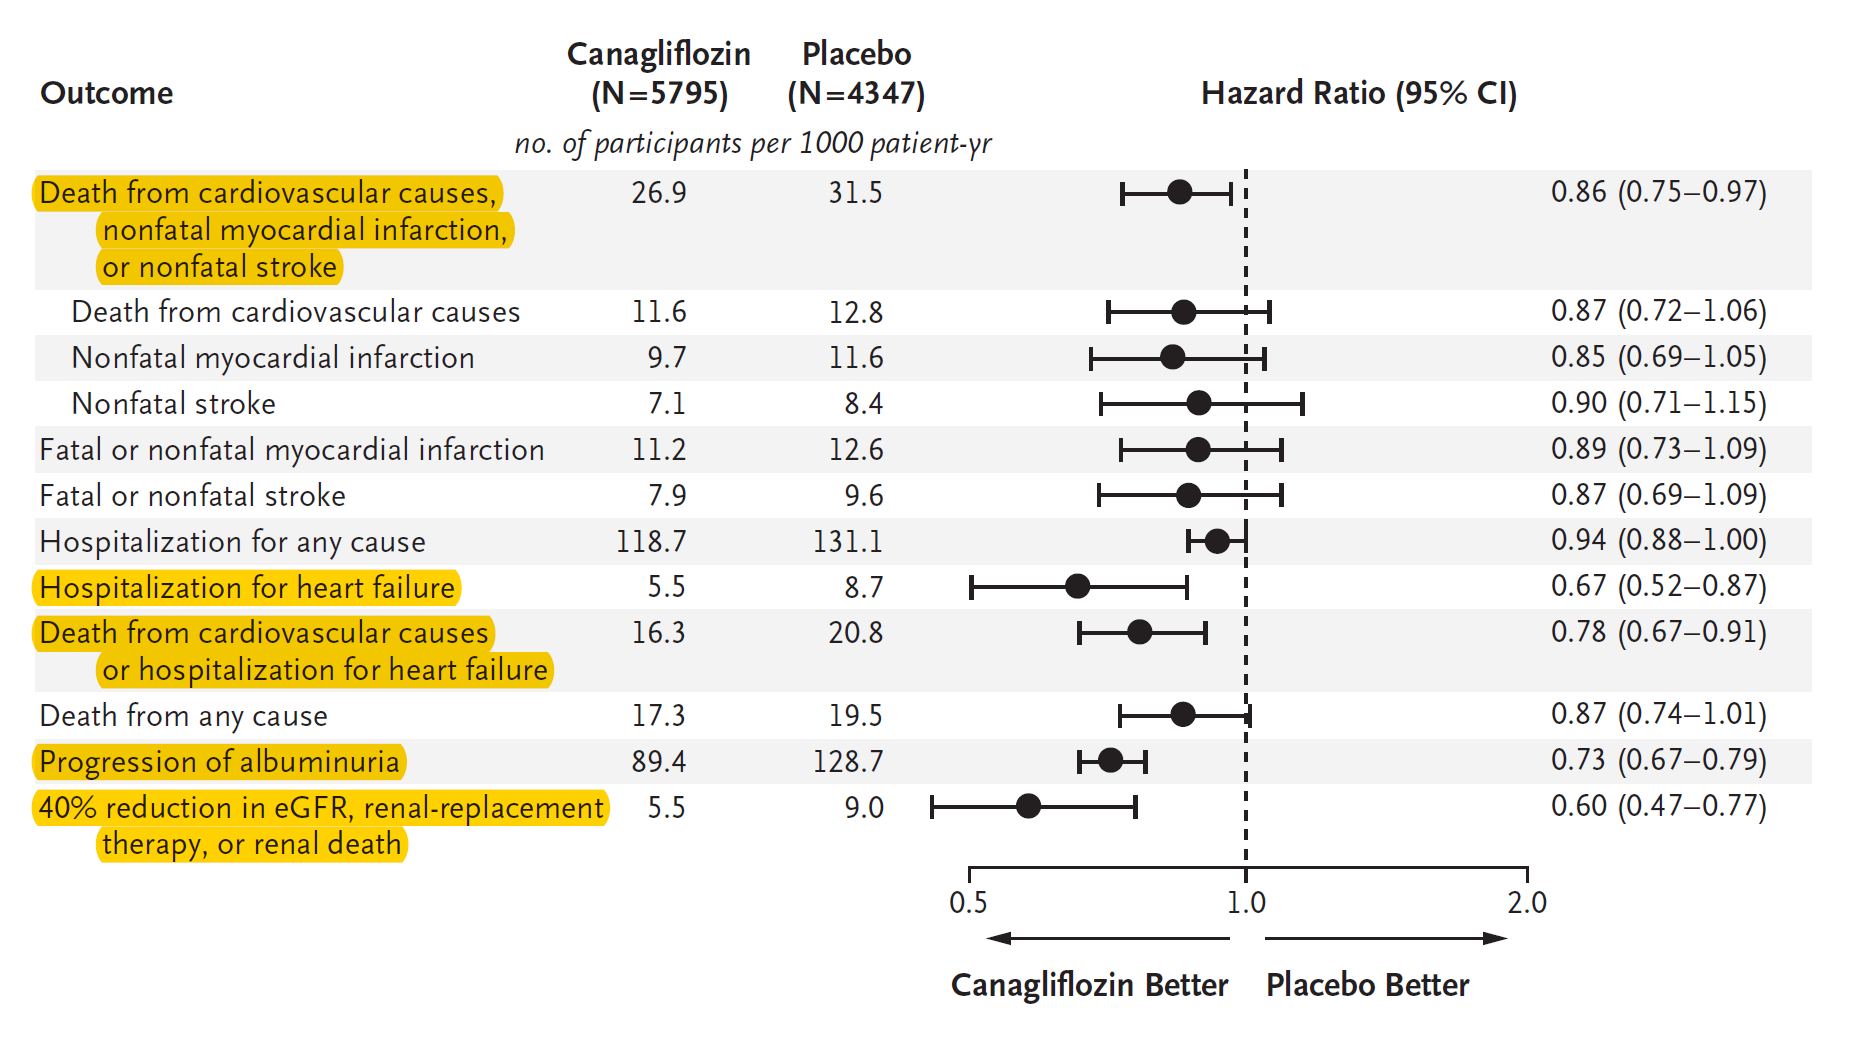 Reduced Cardiovascular And Renal Events With Canaglifozin (CANVAS + CANVAS-R)